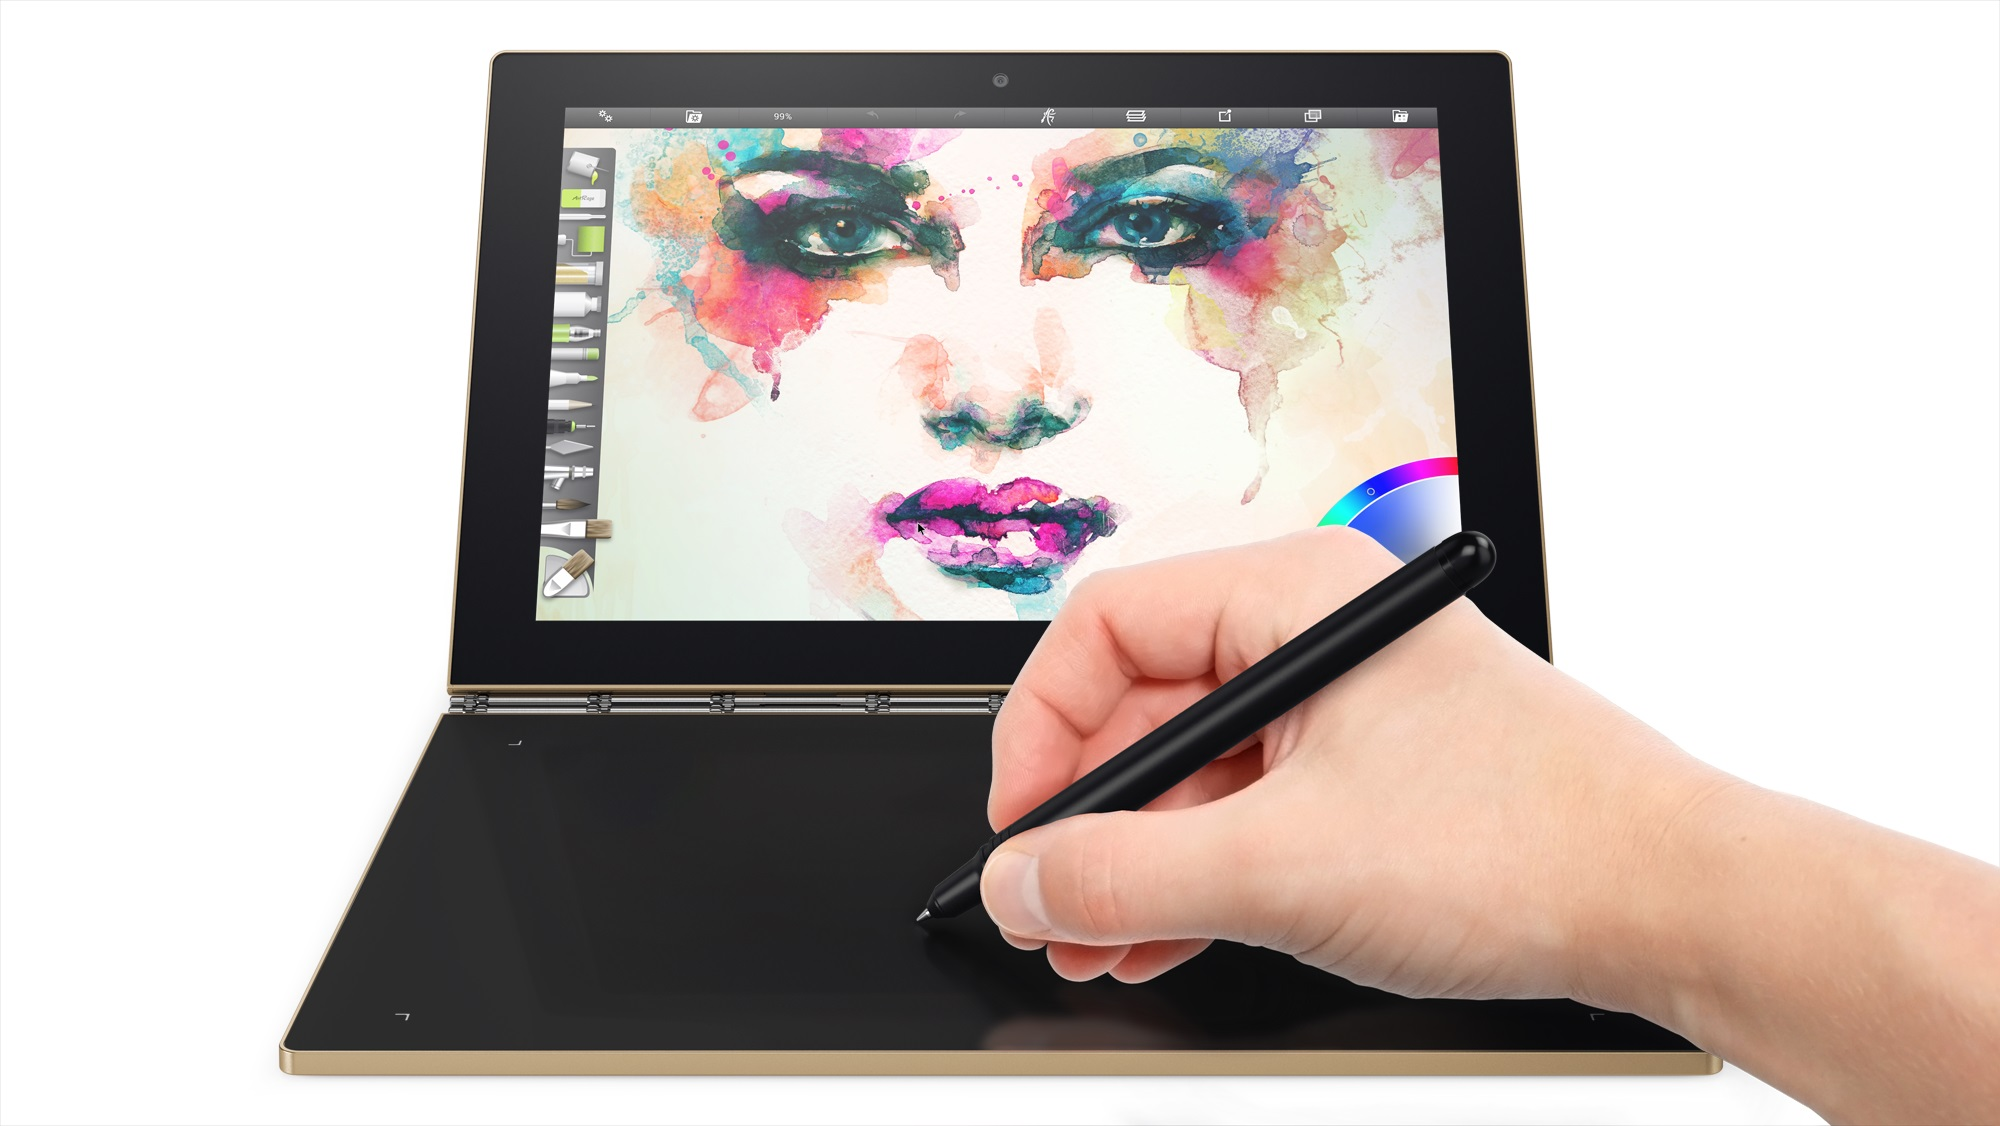 13 Yoga Book Painting Create Mode Landscape